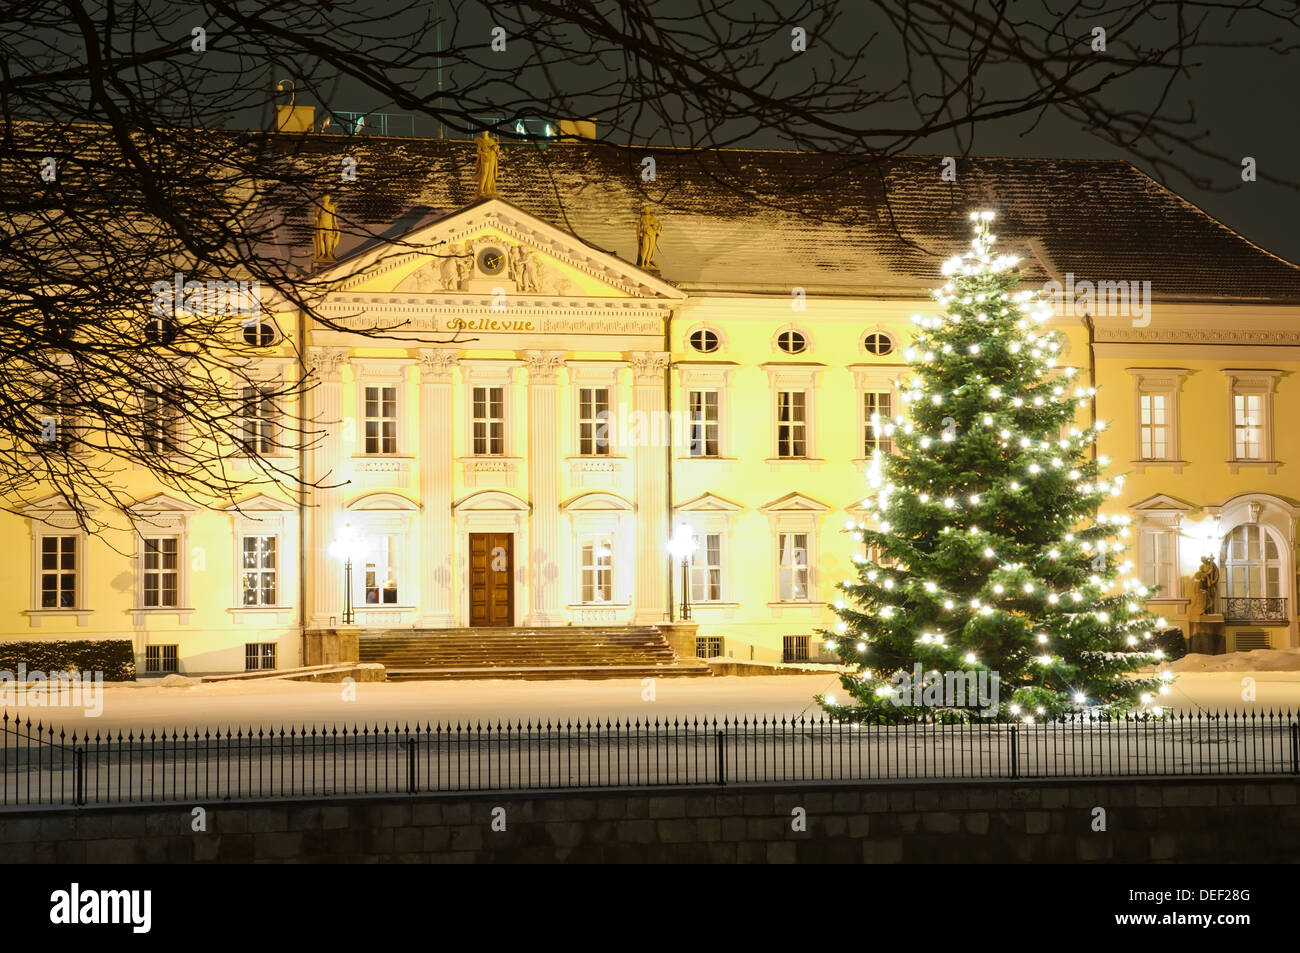 Christmas tree in front of bellevue palace in winter at nicht in Berlin, Germany - Stock Image